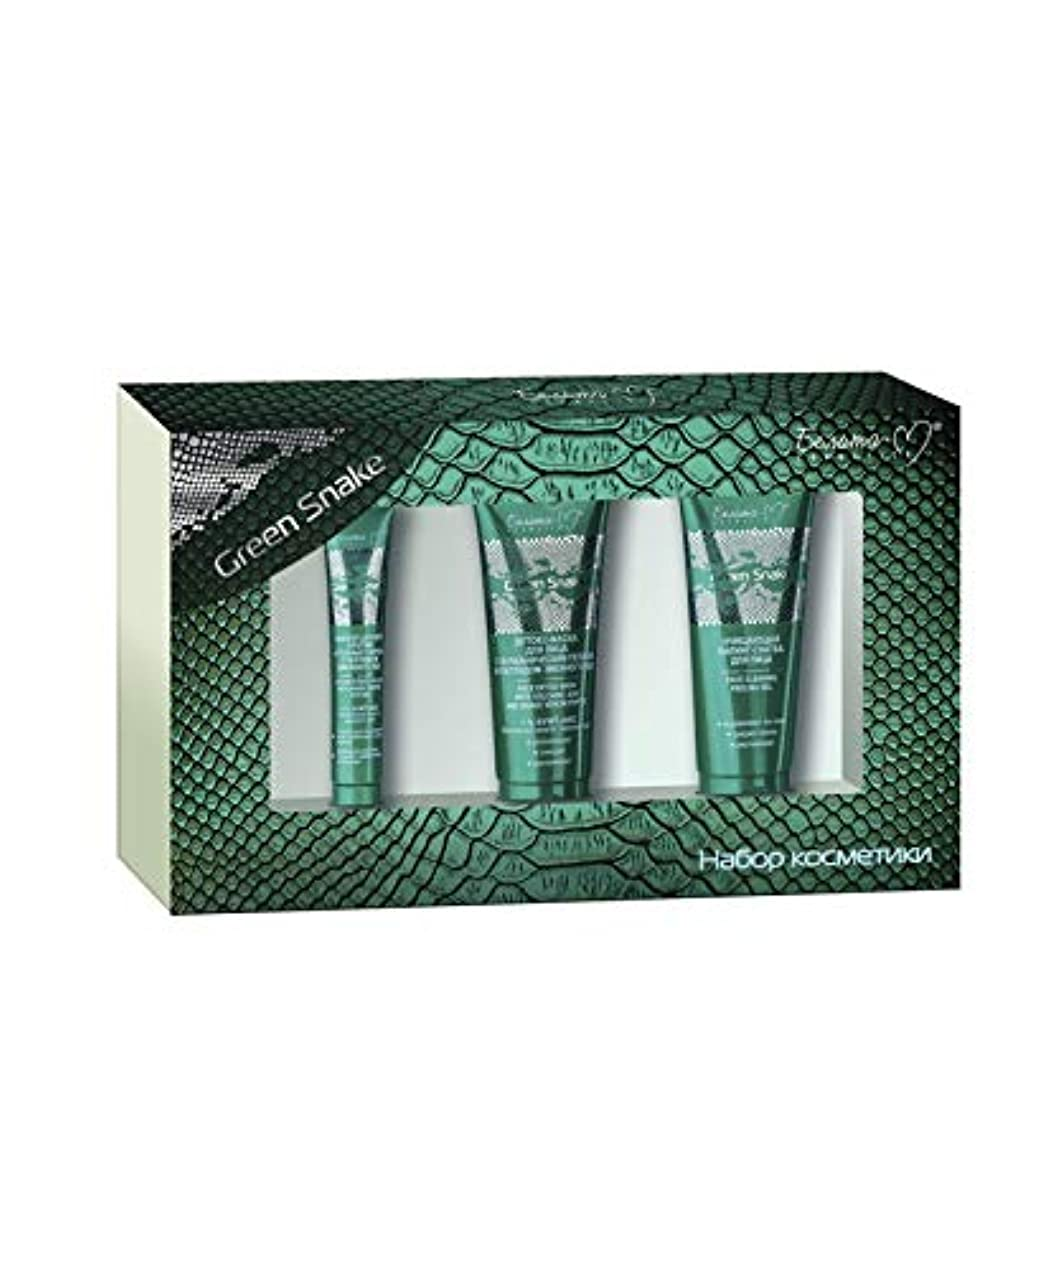 ショッピングセンター信者動機付けるBielita & Vitex | COSMETICS SET GREEN SNAKE | CLEANING PEELING SCREW FOR FACE | EYE FILER AGAINST  GOOSE PAWS ...